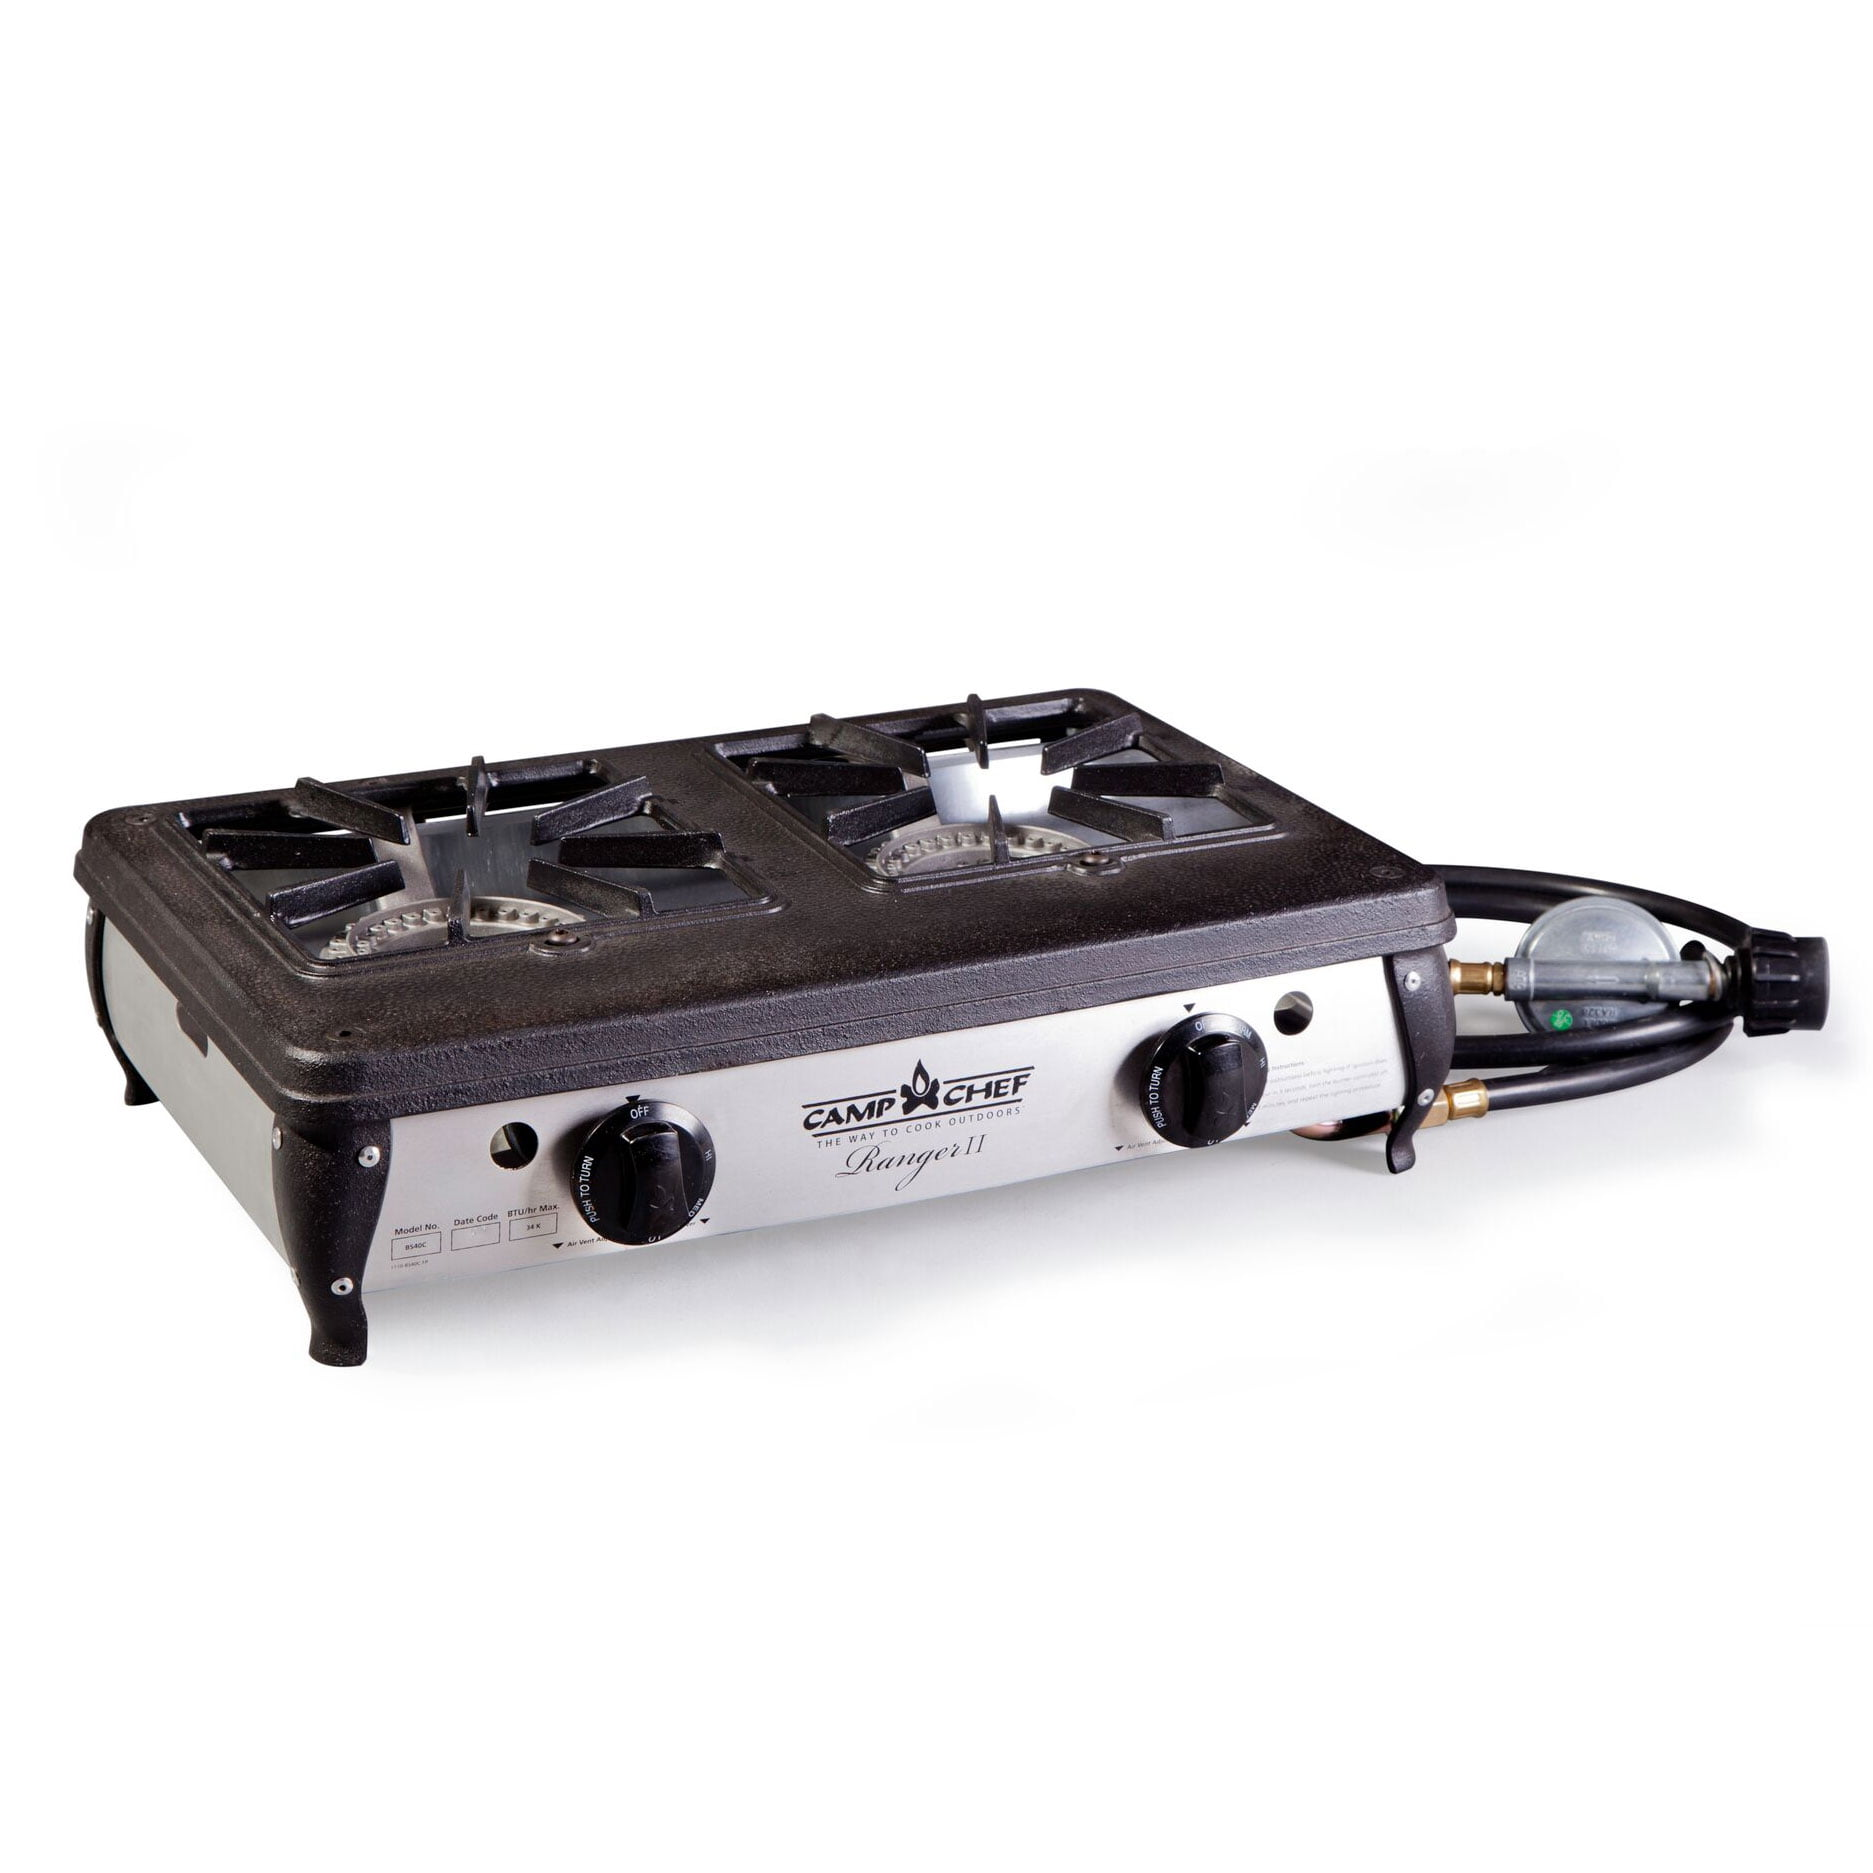 Camp Chef Ranger II Double Burner Table Top Camp Stove by Camp Chef